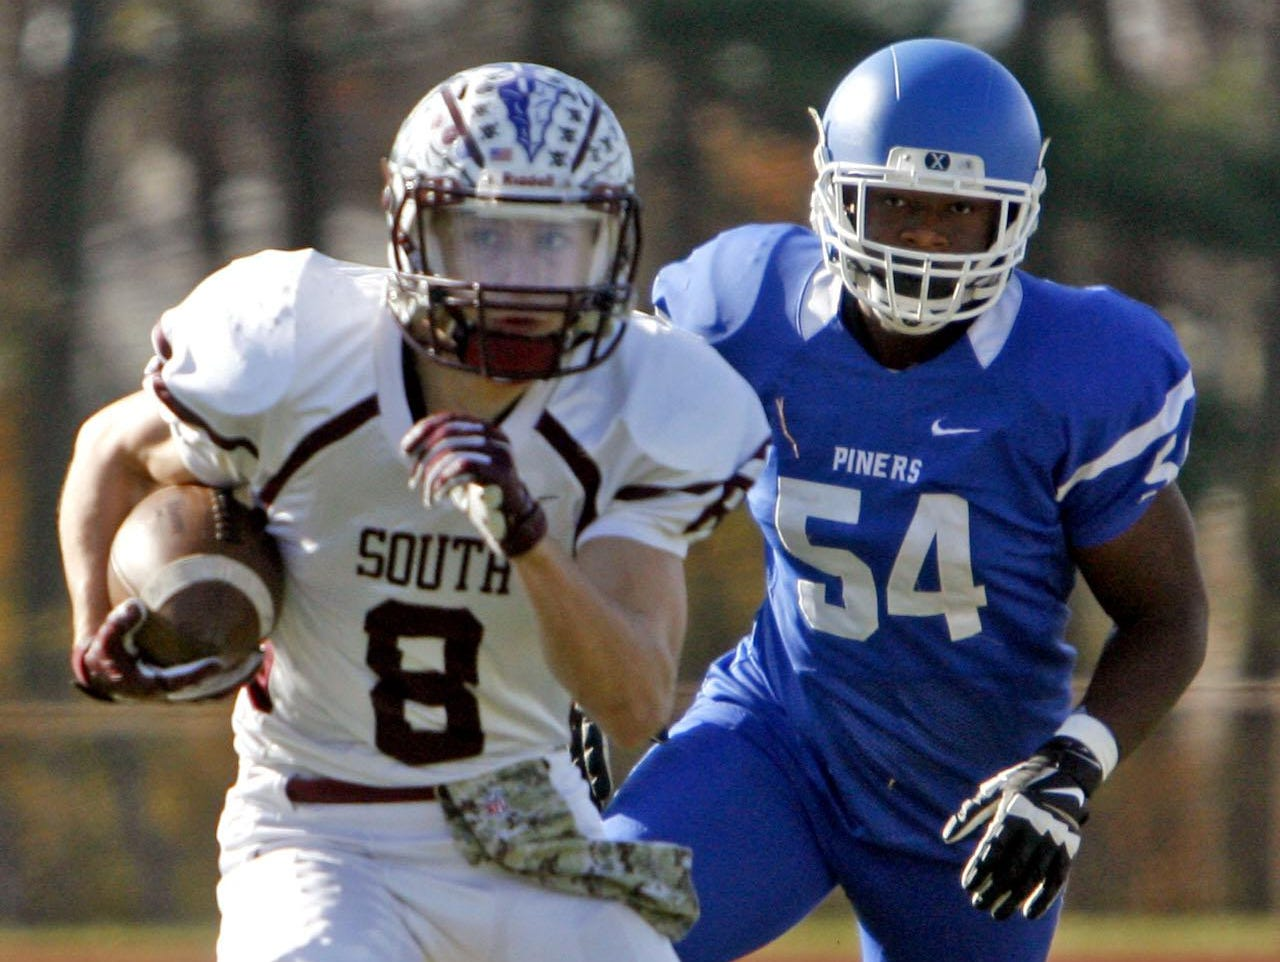 Toms River South's Jason Porter (8) gains yardage at Lakewood High School Nov. 26, 2015. In pursuit is Lakewood's Josh Lezin (54). Photo by Vincent DiSalvio / Special to The ASBURY PARK PRESS